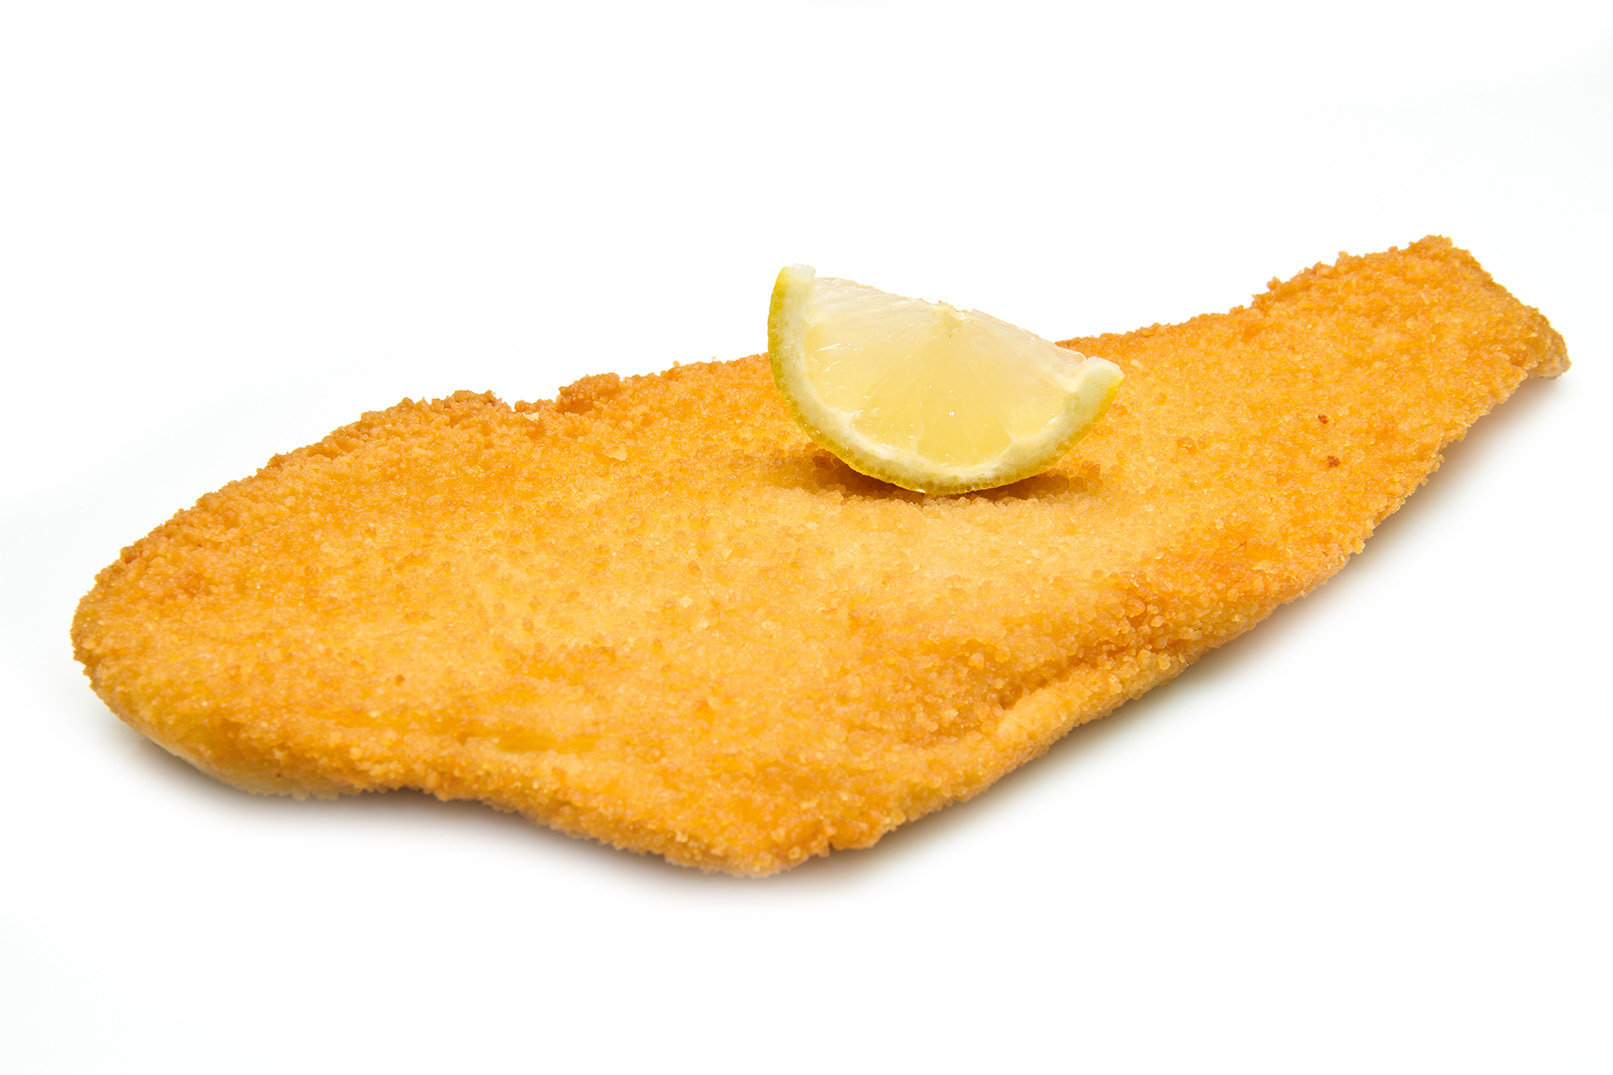 SOLE FILLETS BREADED Image